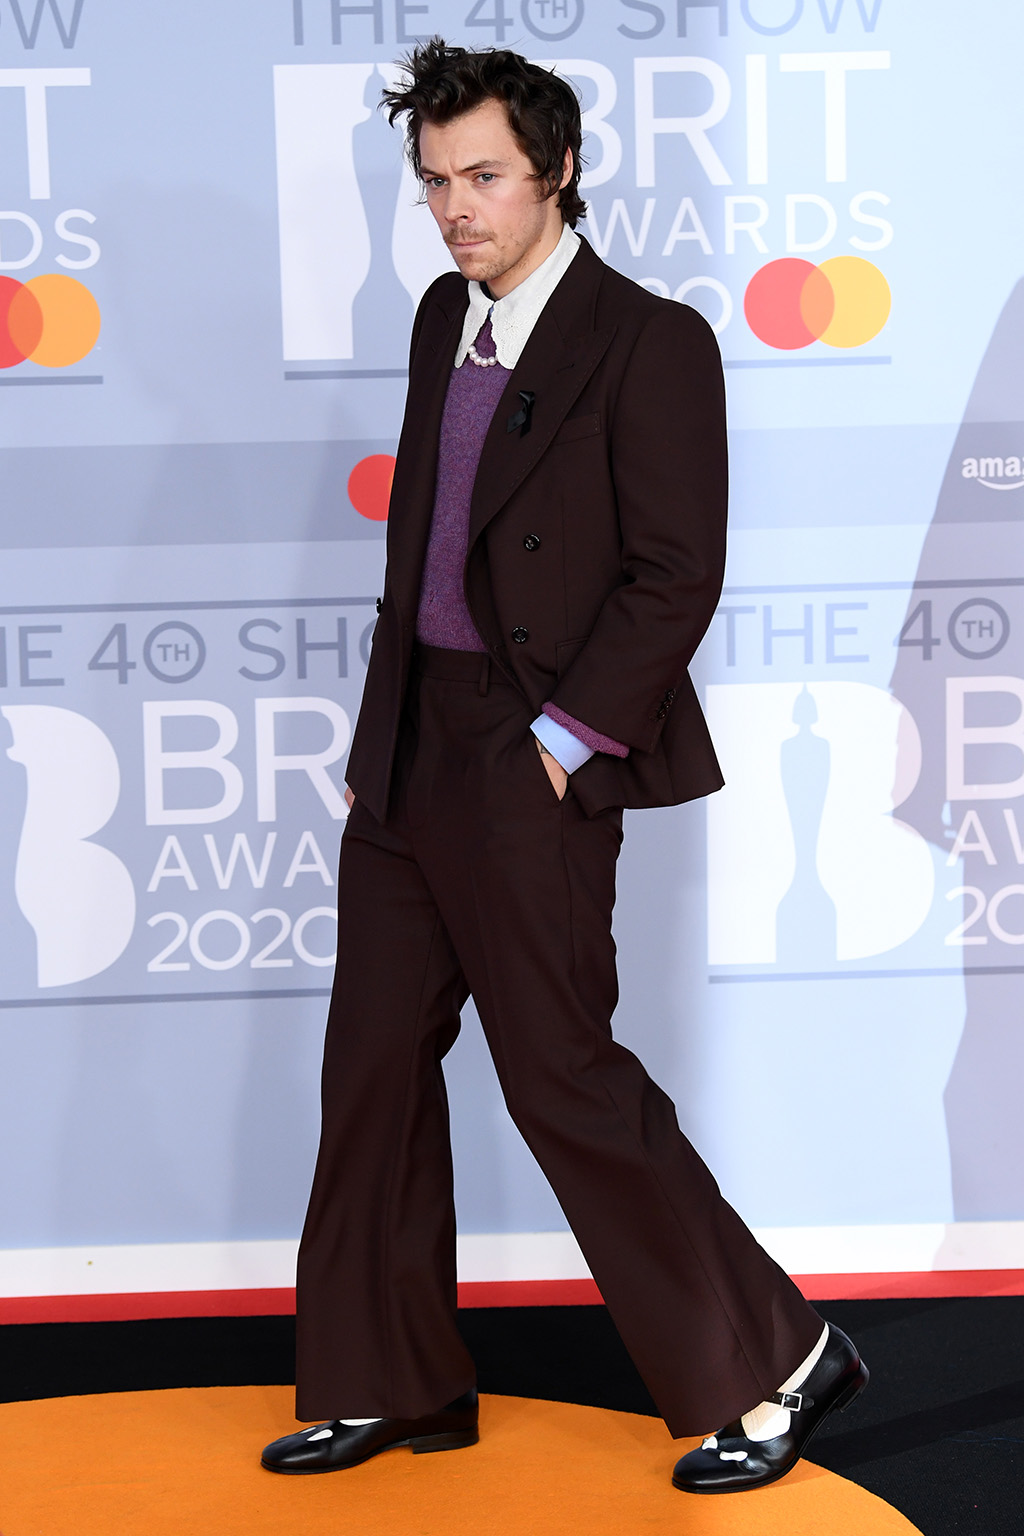 Harry Styles, 40th Brit Awards, Arrivals, The O2 Arena, London, UK - 18 Feb 2020